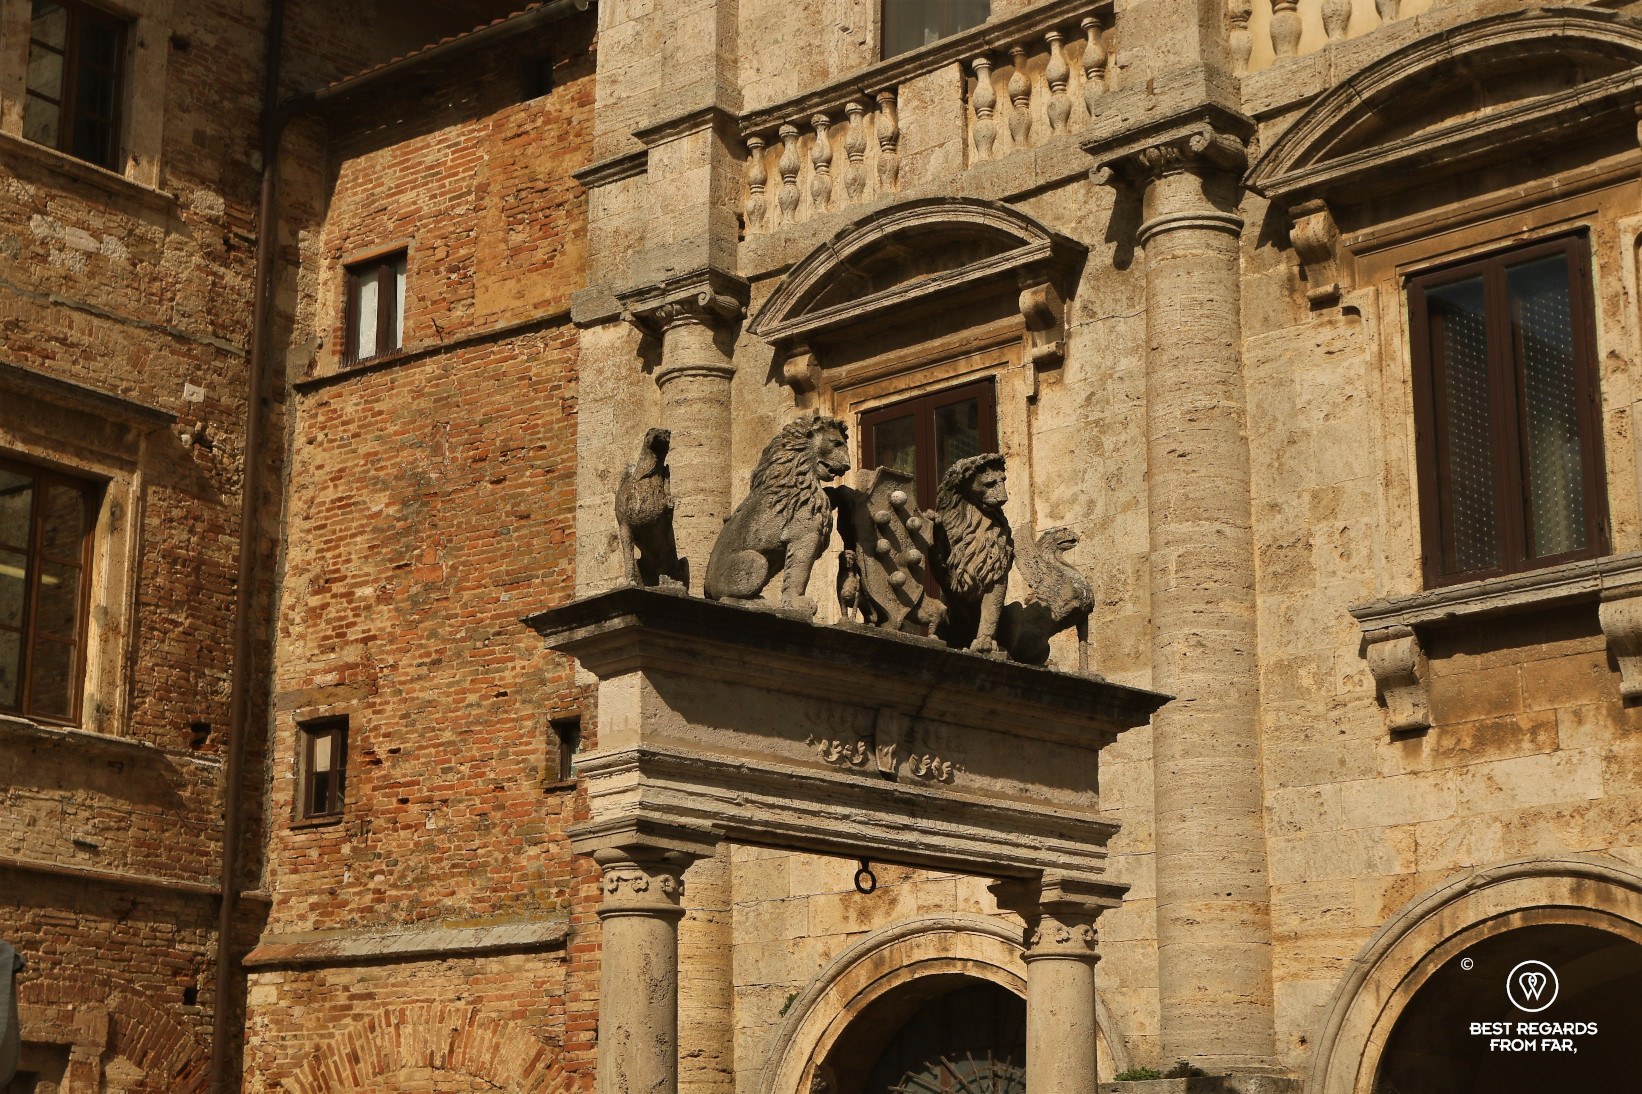 Sculpture of lions, the medici weapon and old facades in Italy